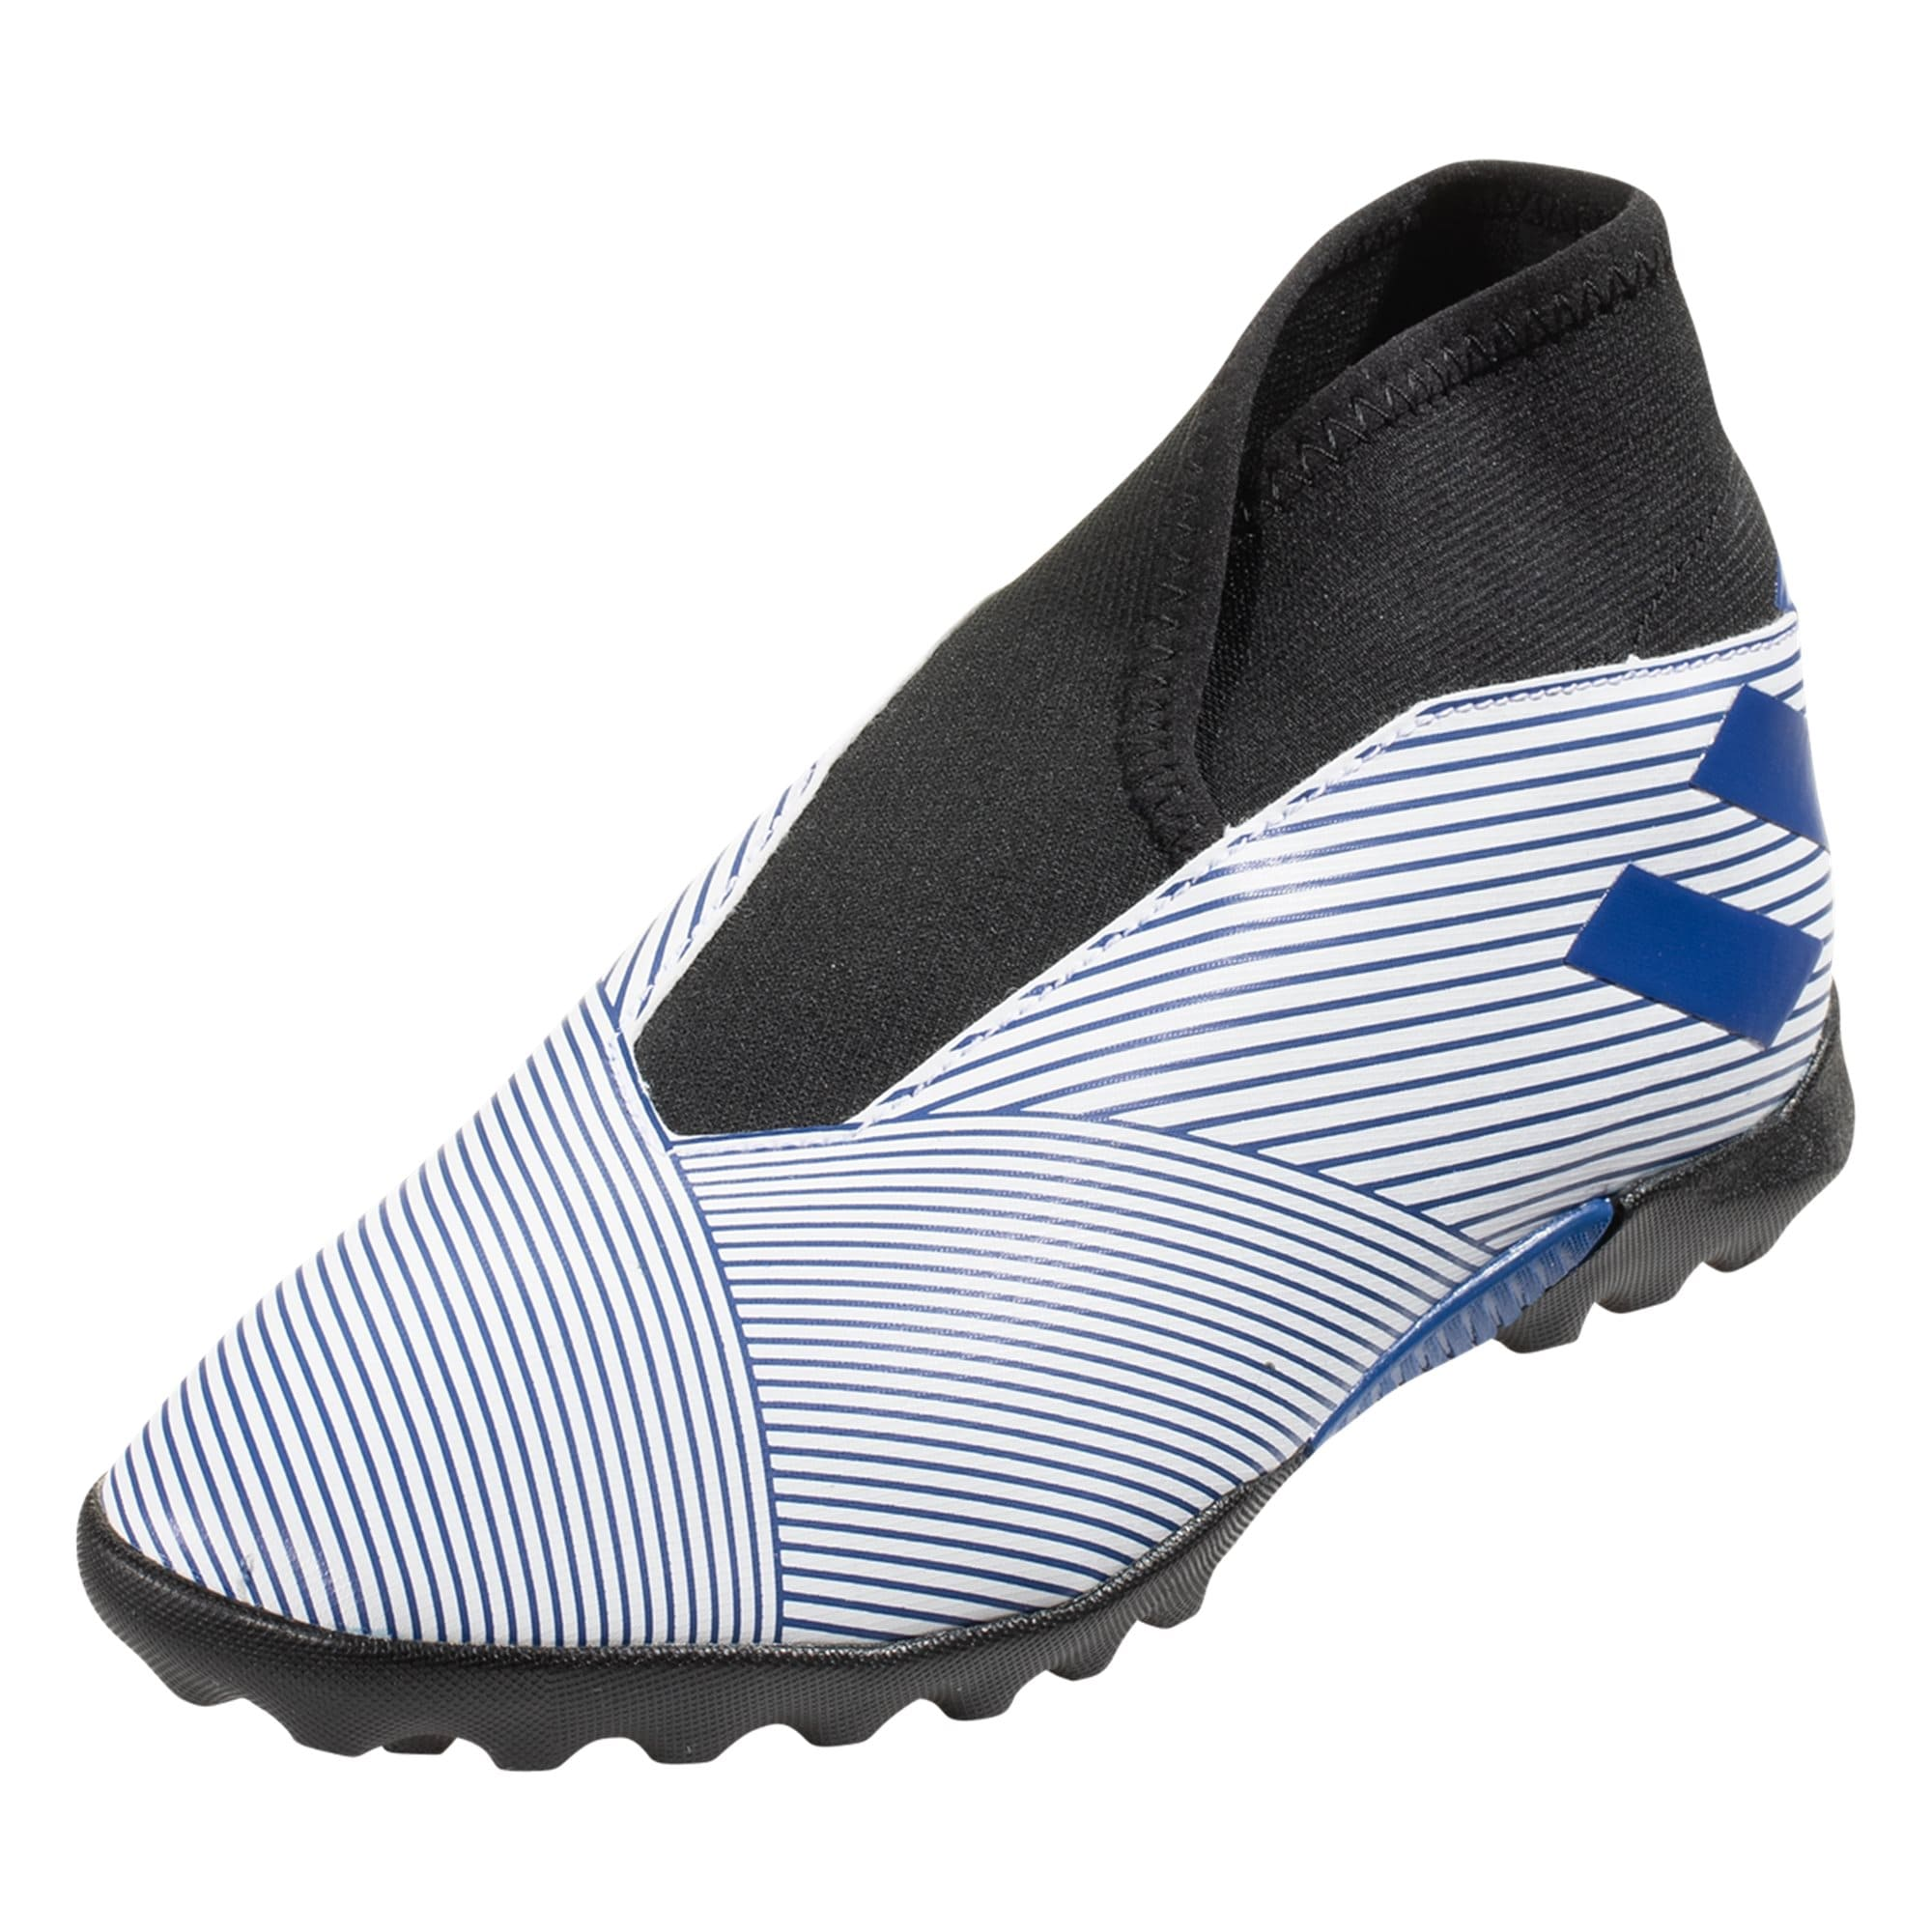 adidas Nemeziz 19.3 Junior TF Artificial Turf Soccer Shoes - White / Royal Blue